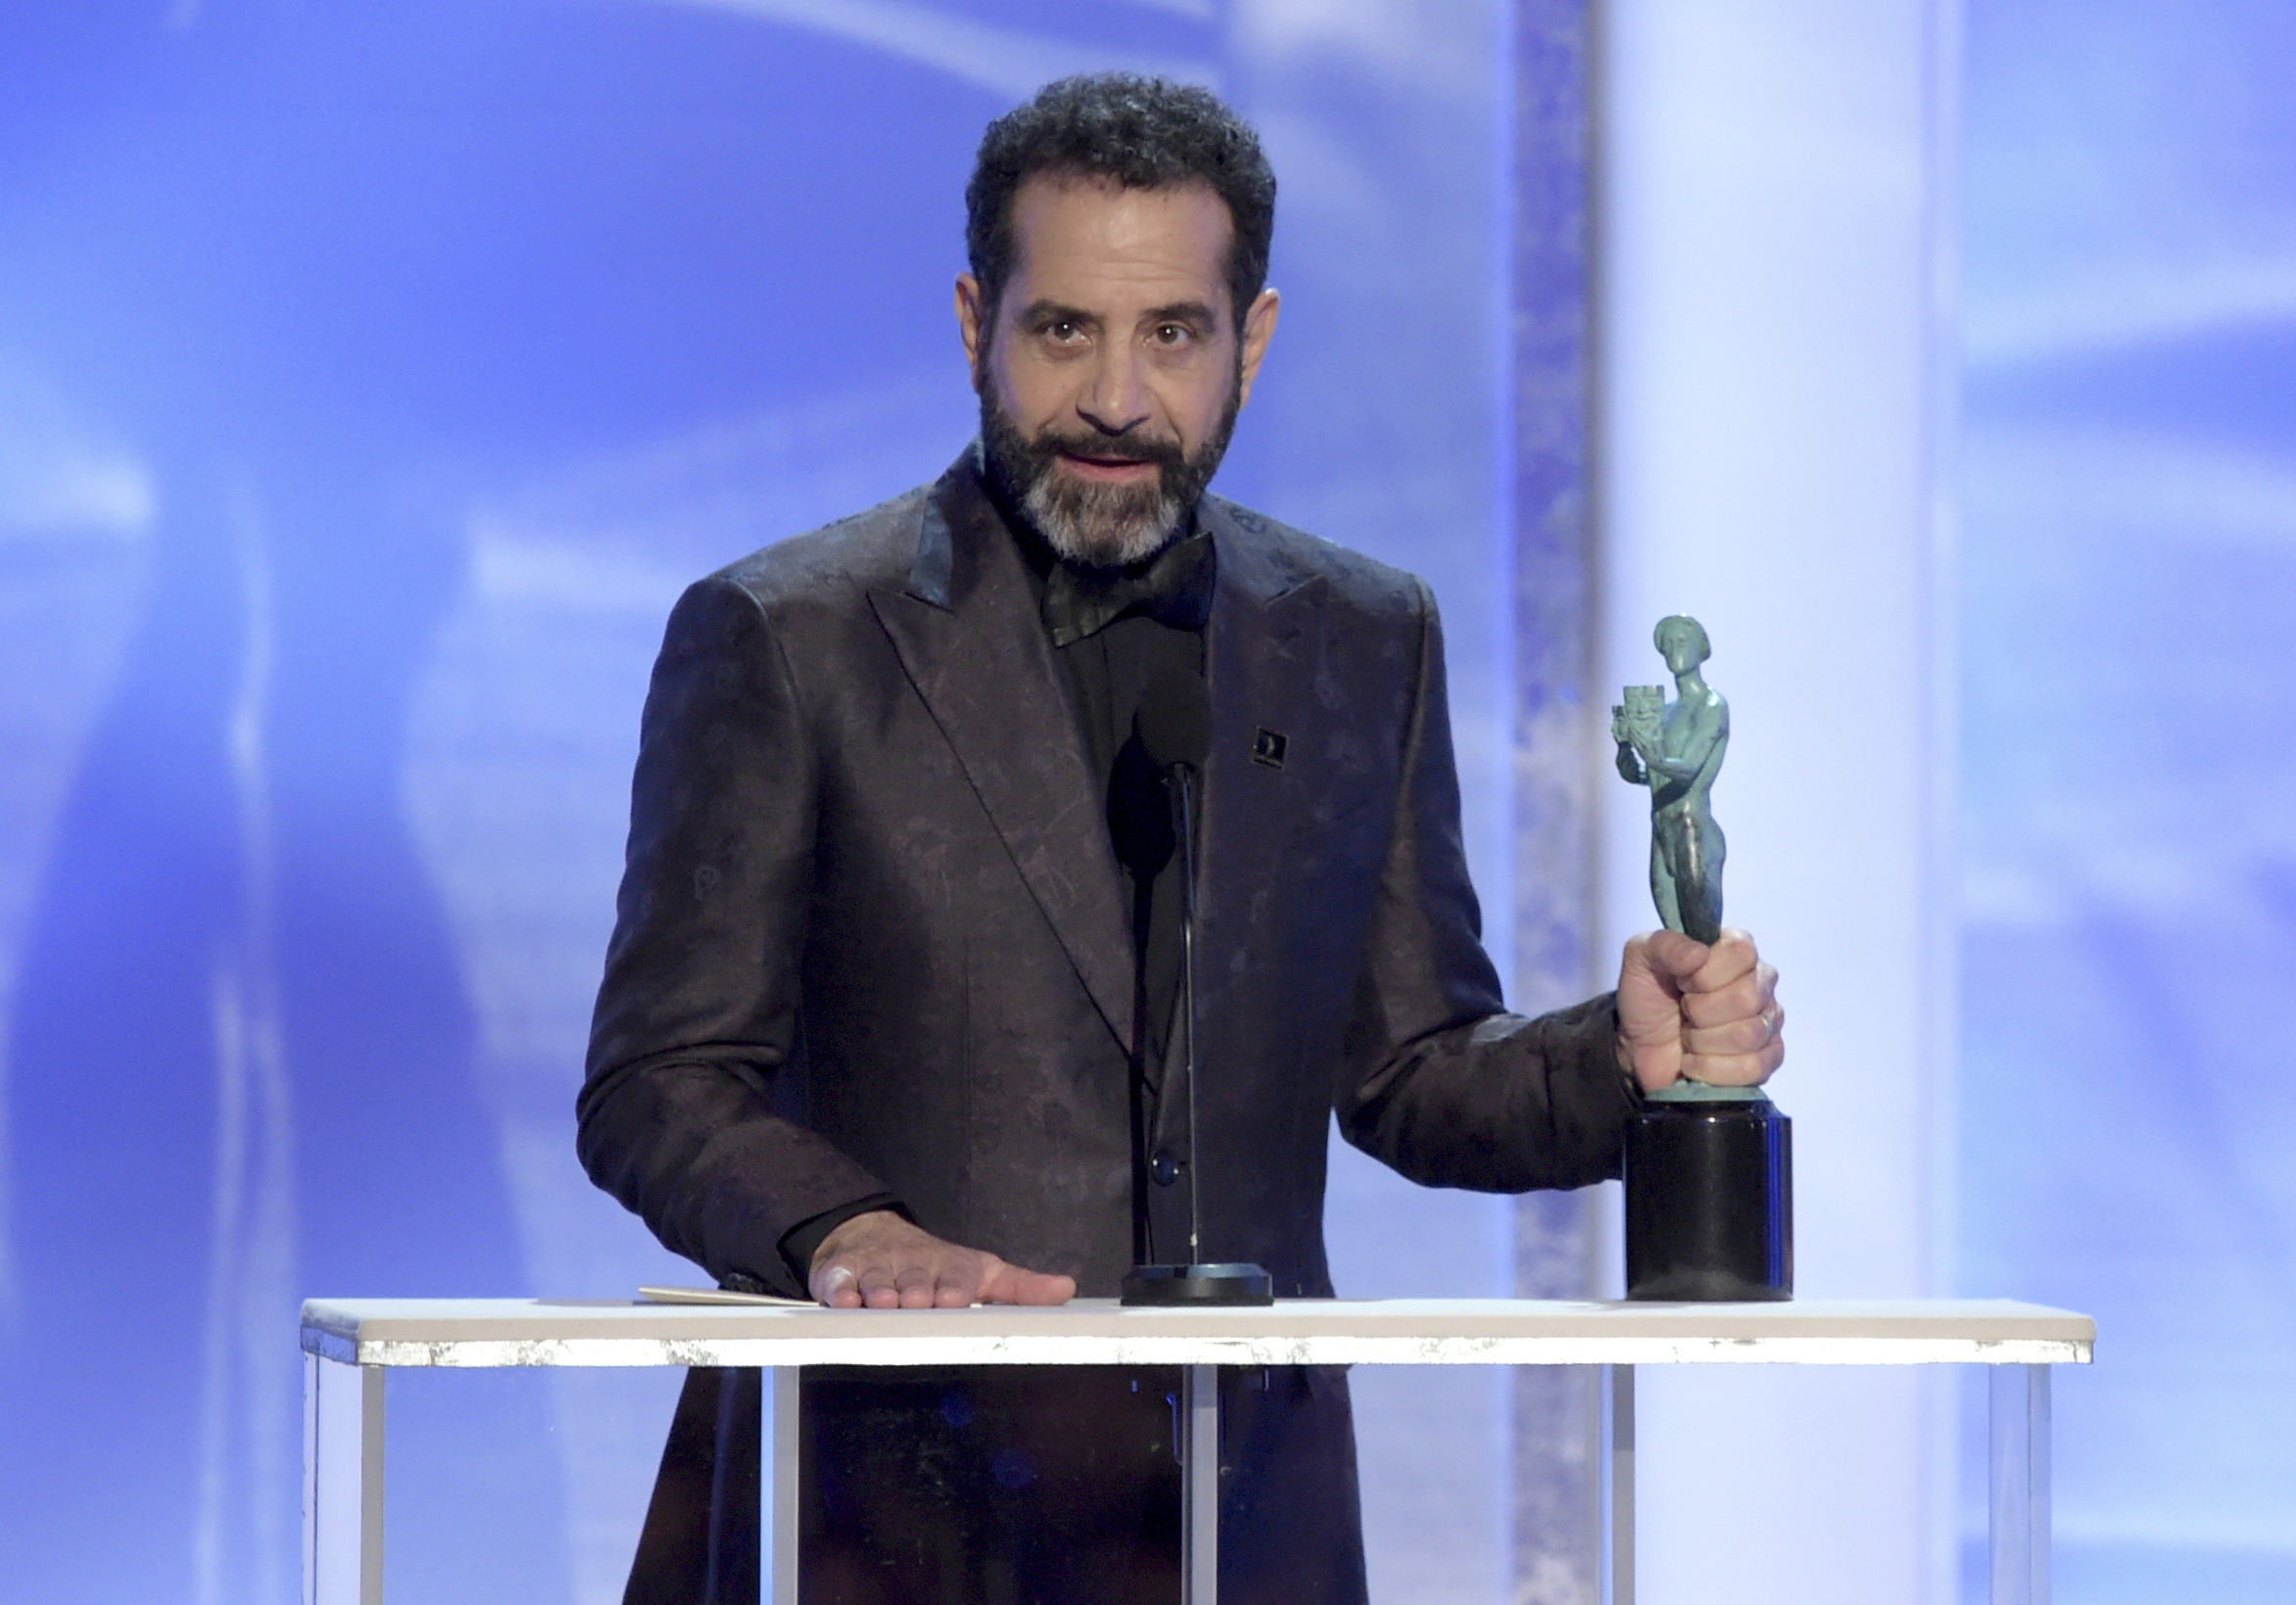 Tony Shalhoub accepts the award for outstanding performance by a male actor in a comedy series for